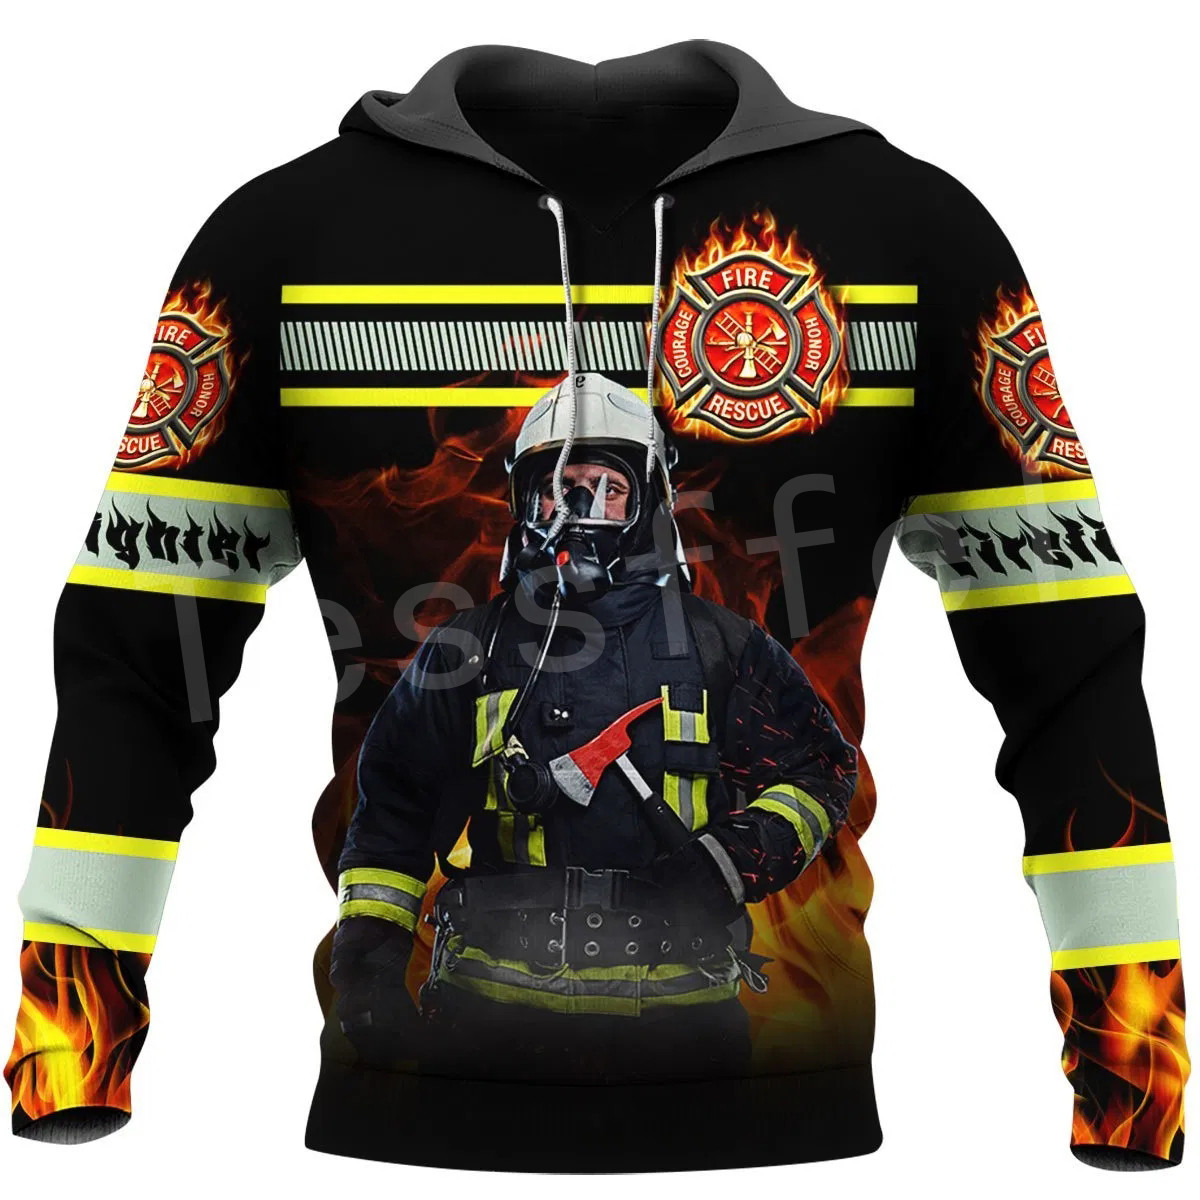 Tessffel Firefighters Suit Firemen Hero Harajuku Pullover NewFashion Funny Unisex 3DPrint Zipper/Hoodies/Sweatshirts/Jacket A-13